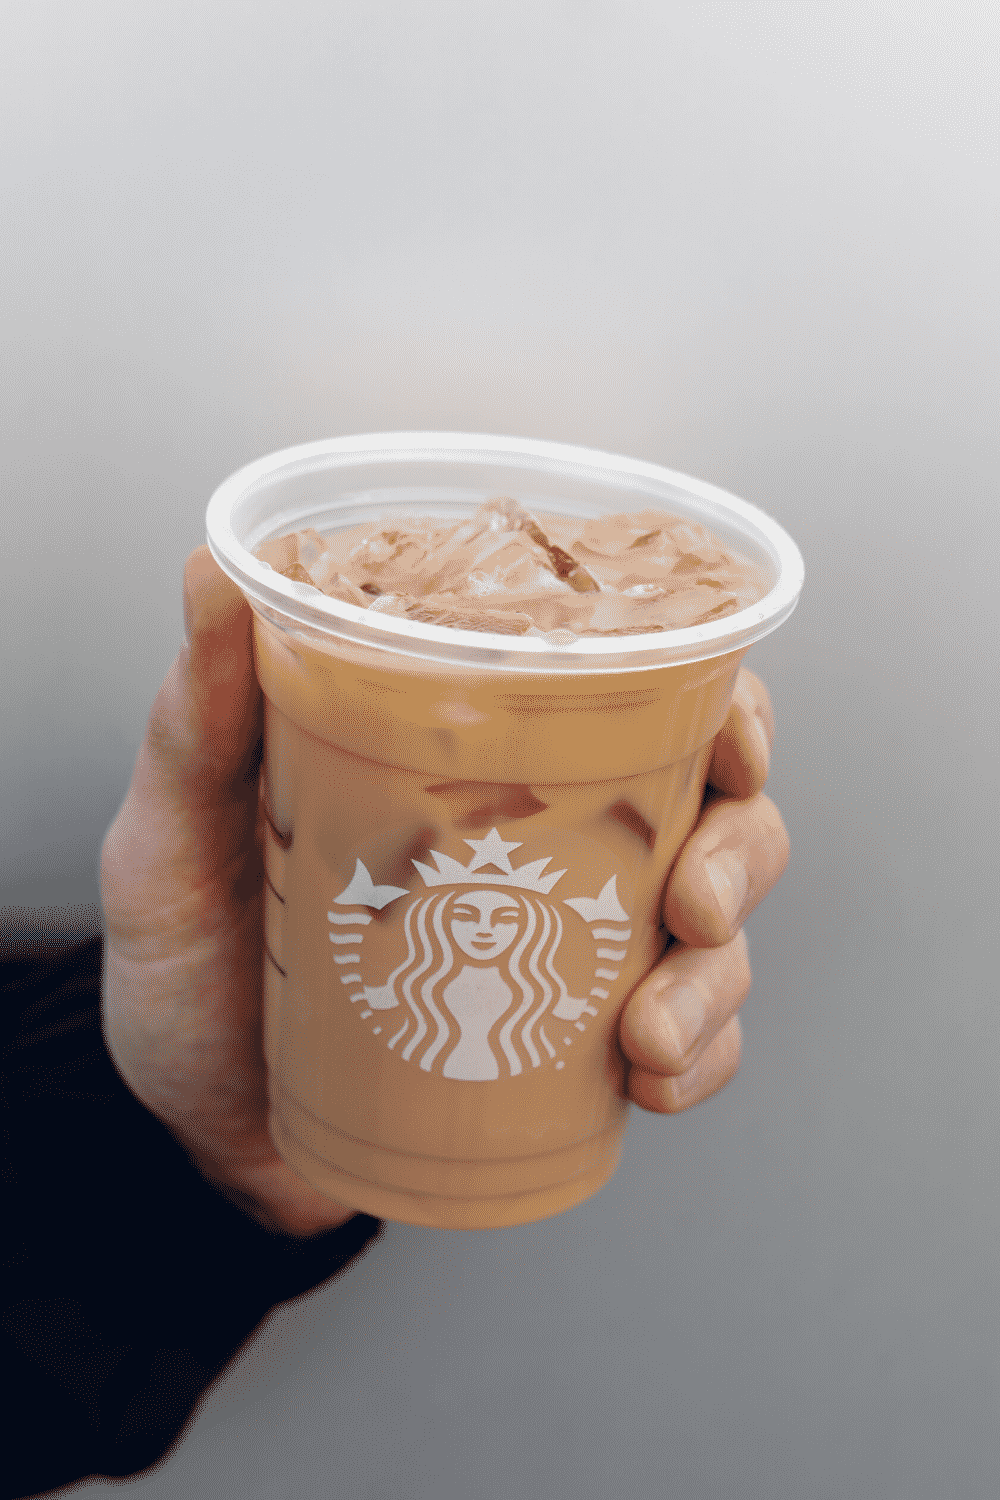 A hand holding a cup of Starbucks vegan iced coffee.